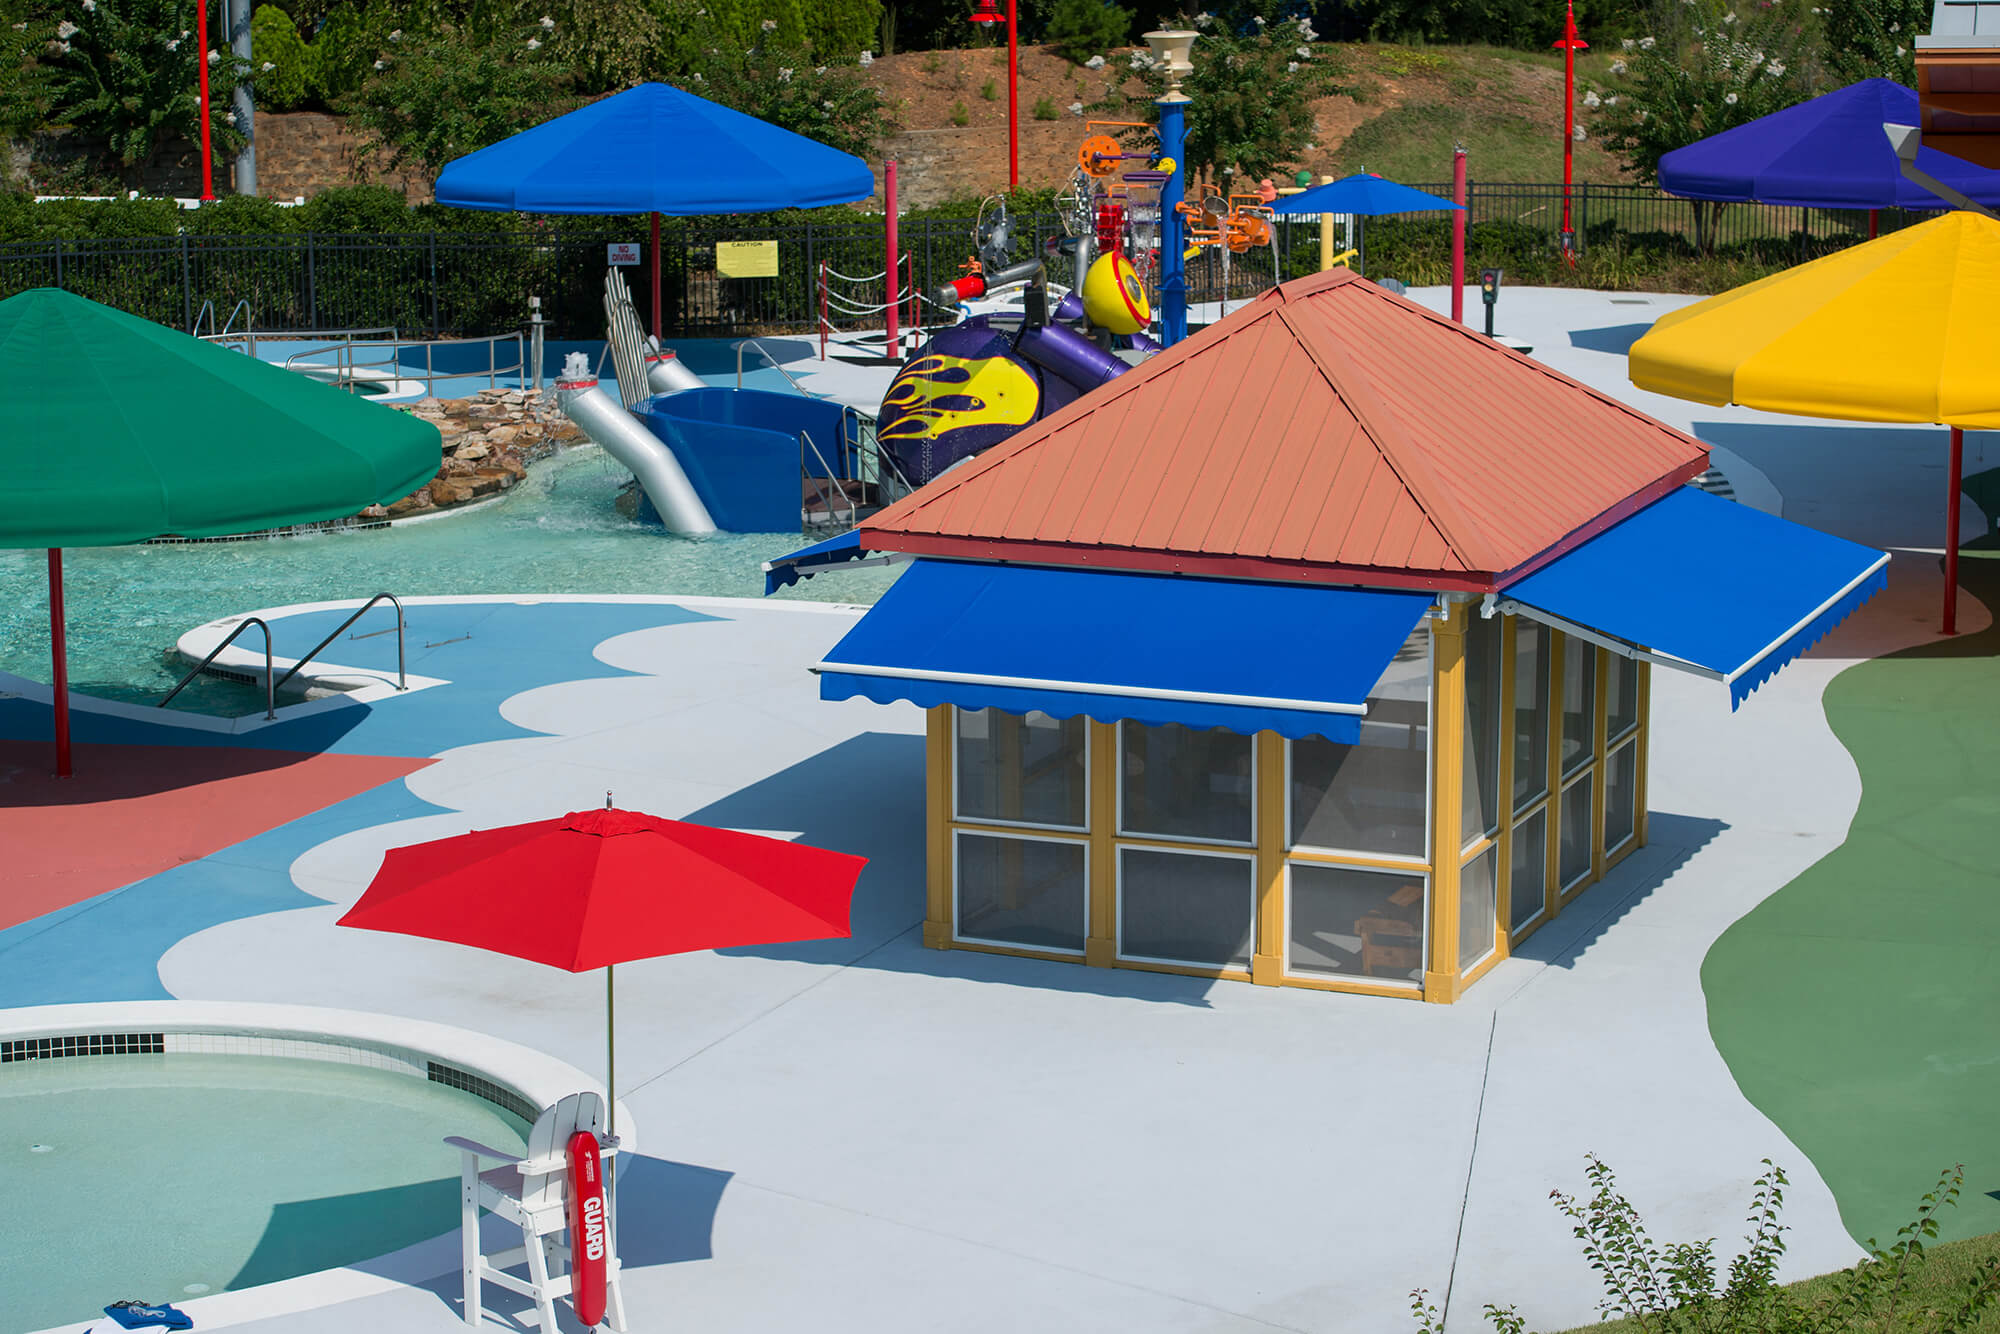 A waterpark offers shade with brighly colored umbrellas and bold blue retractable awnings